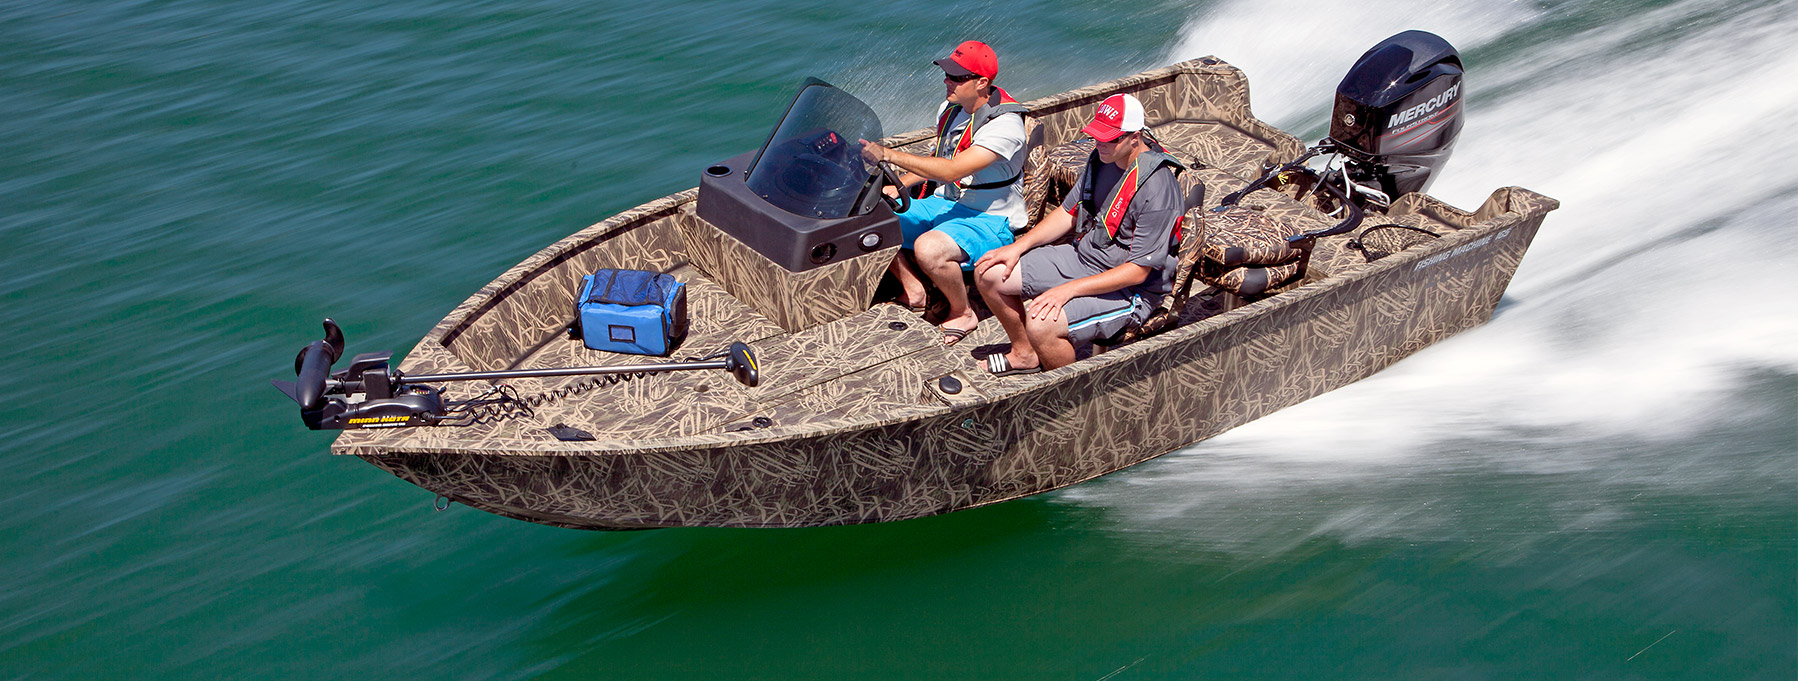 2017 fm 165 poly camo deep v boat best fishing boats for Best fishing boats 2017